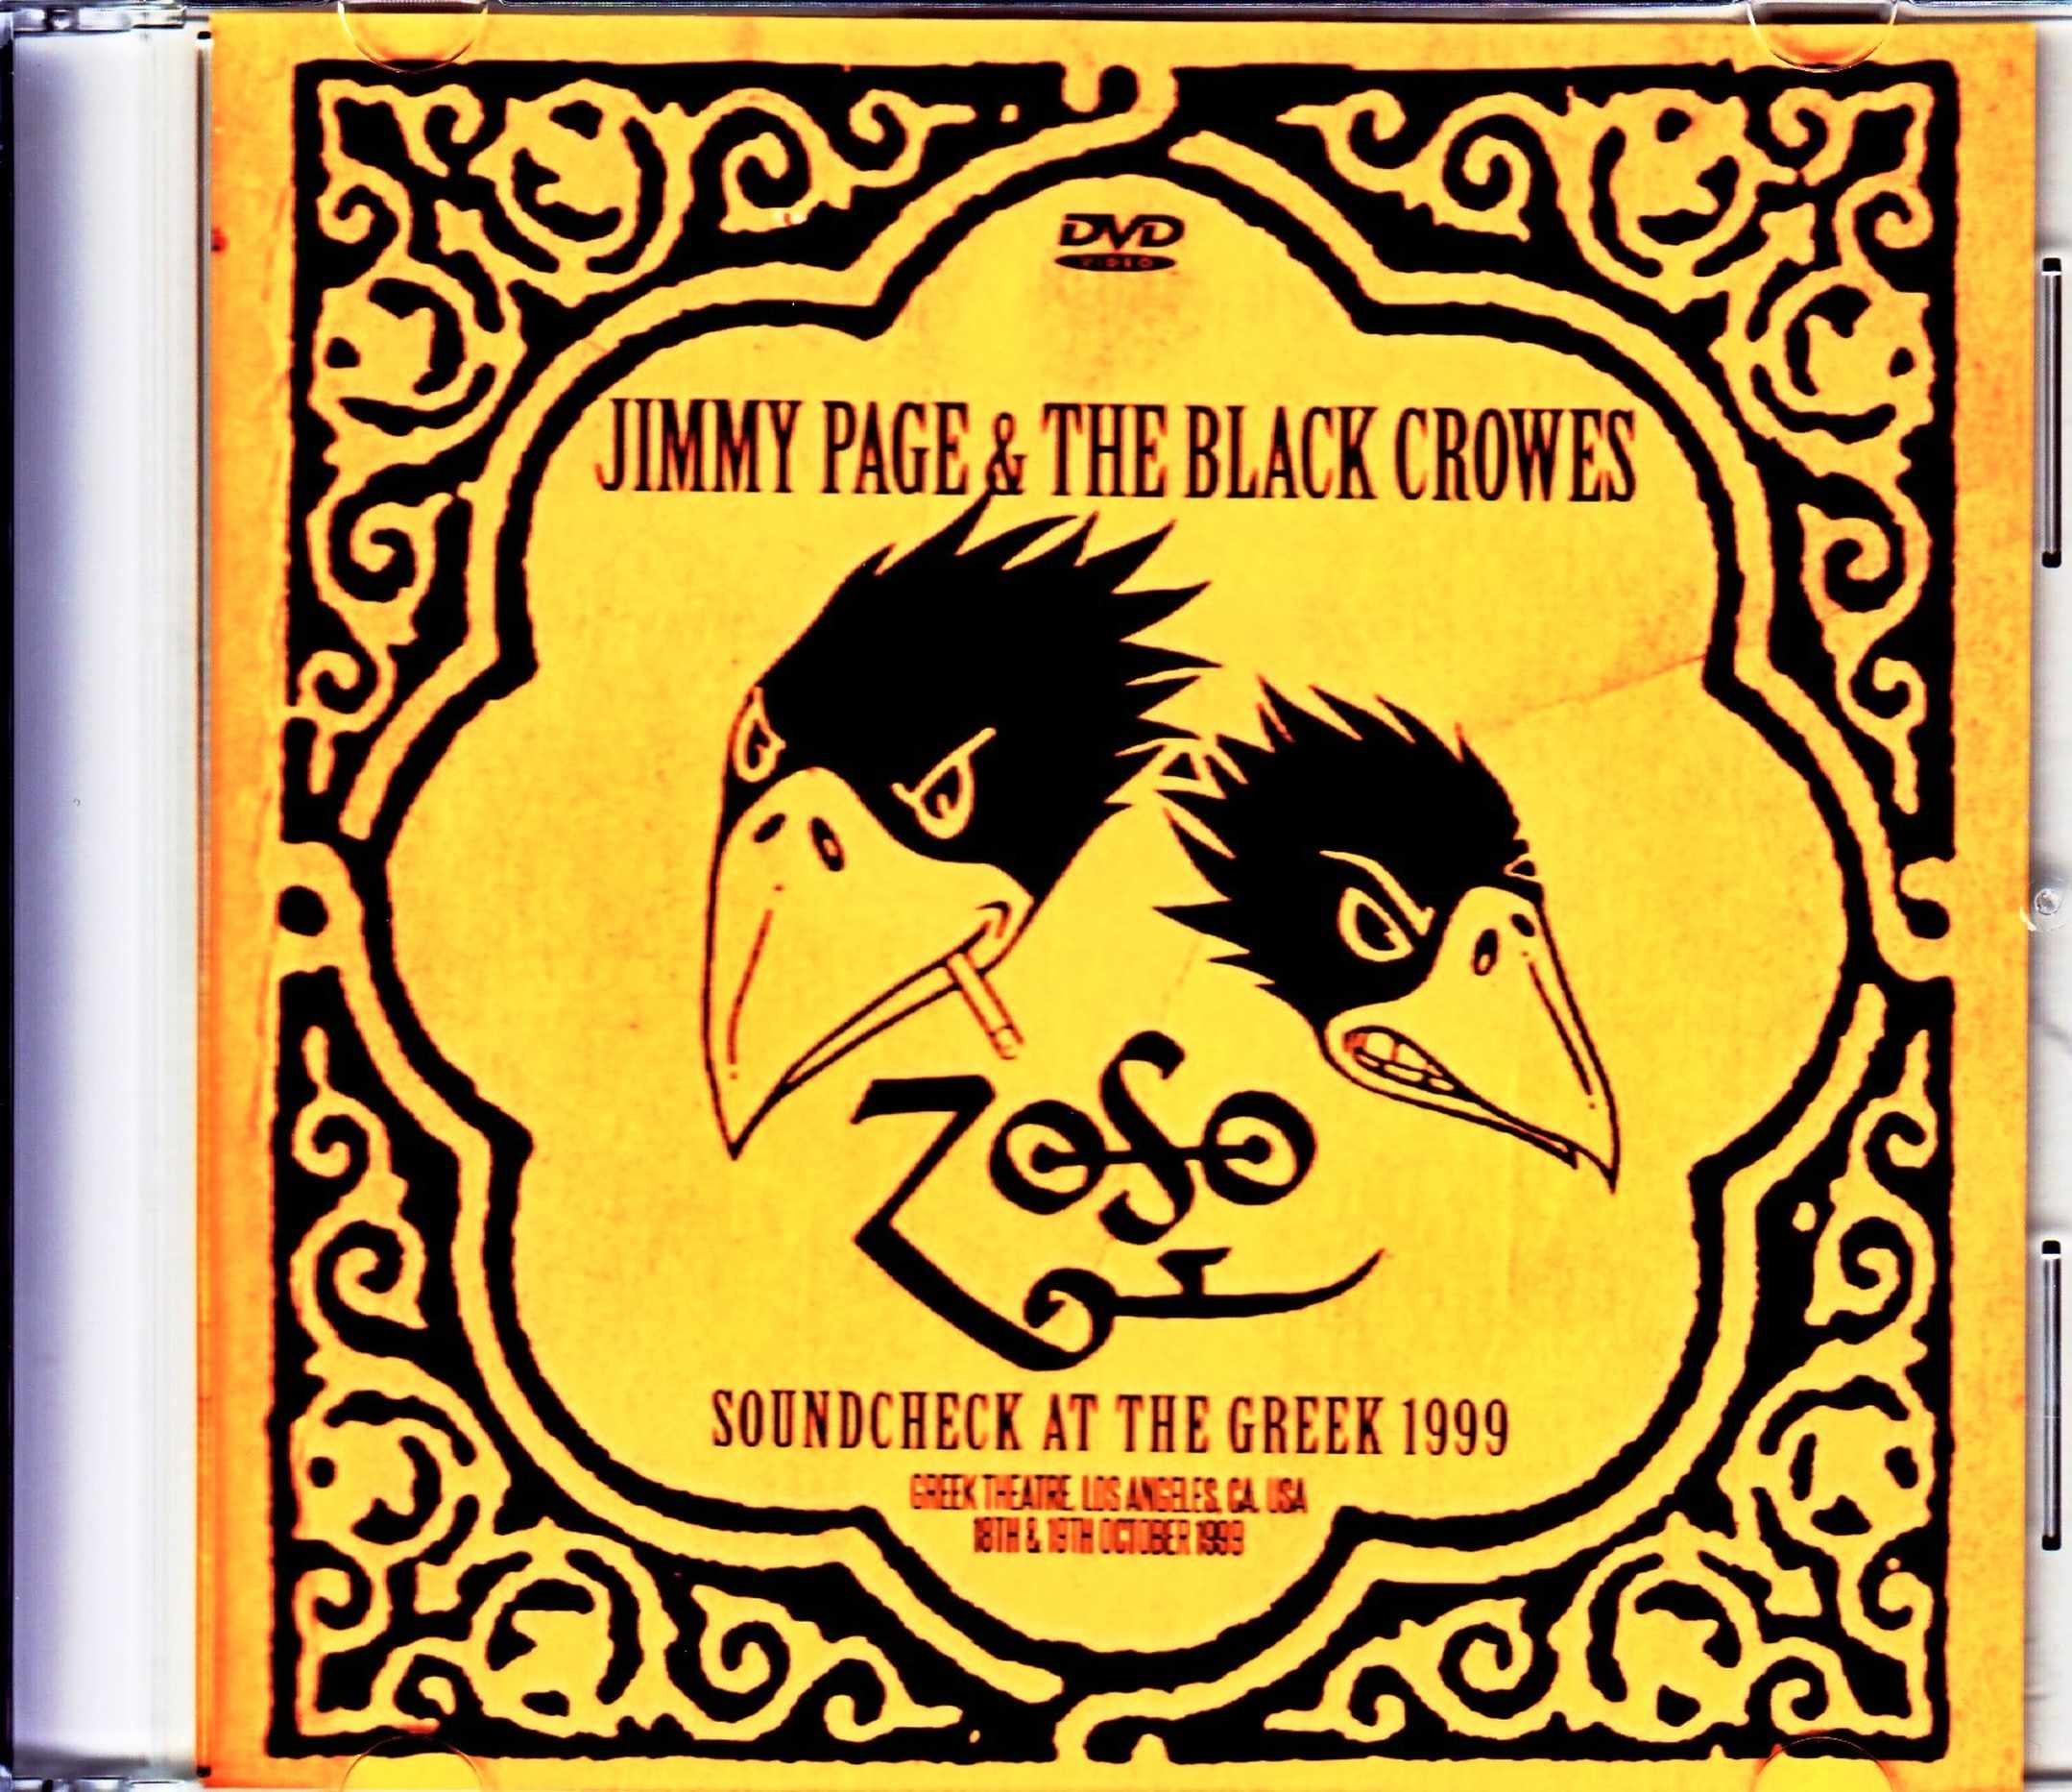 Jimmy Page,Black Crowes ジミー・ペイジ ブラック・クロウズ/CA,USA 1999 2Days Soundcheck